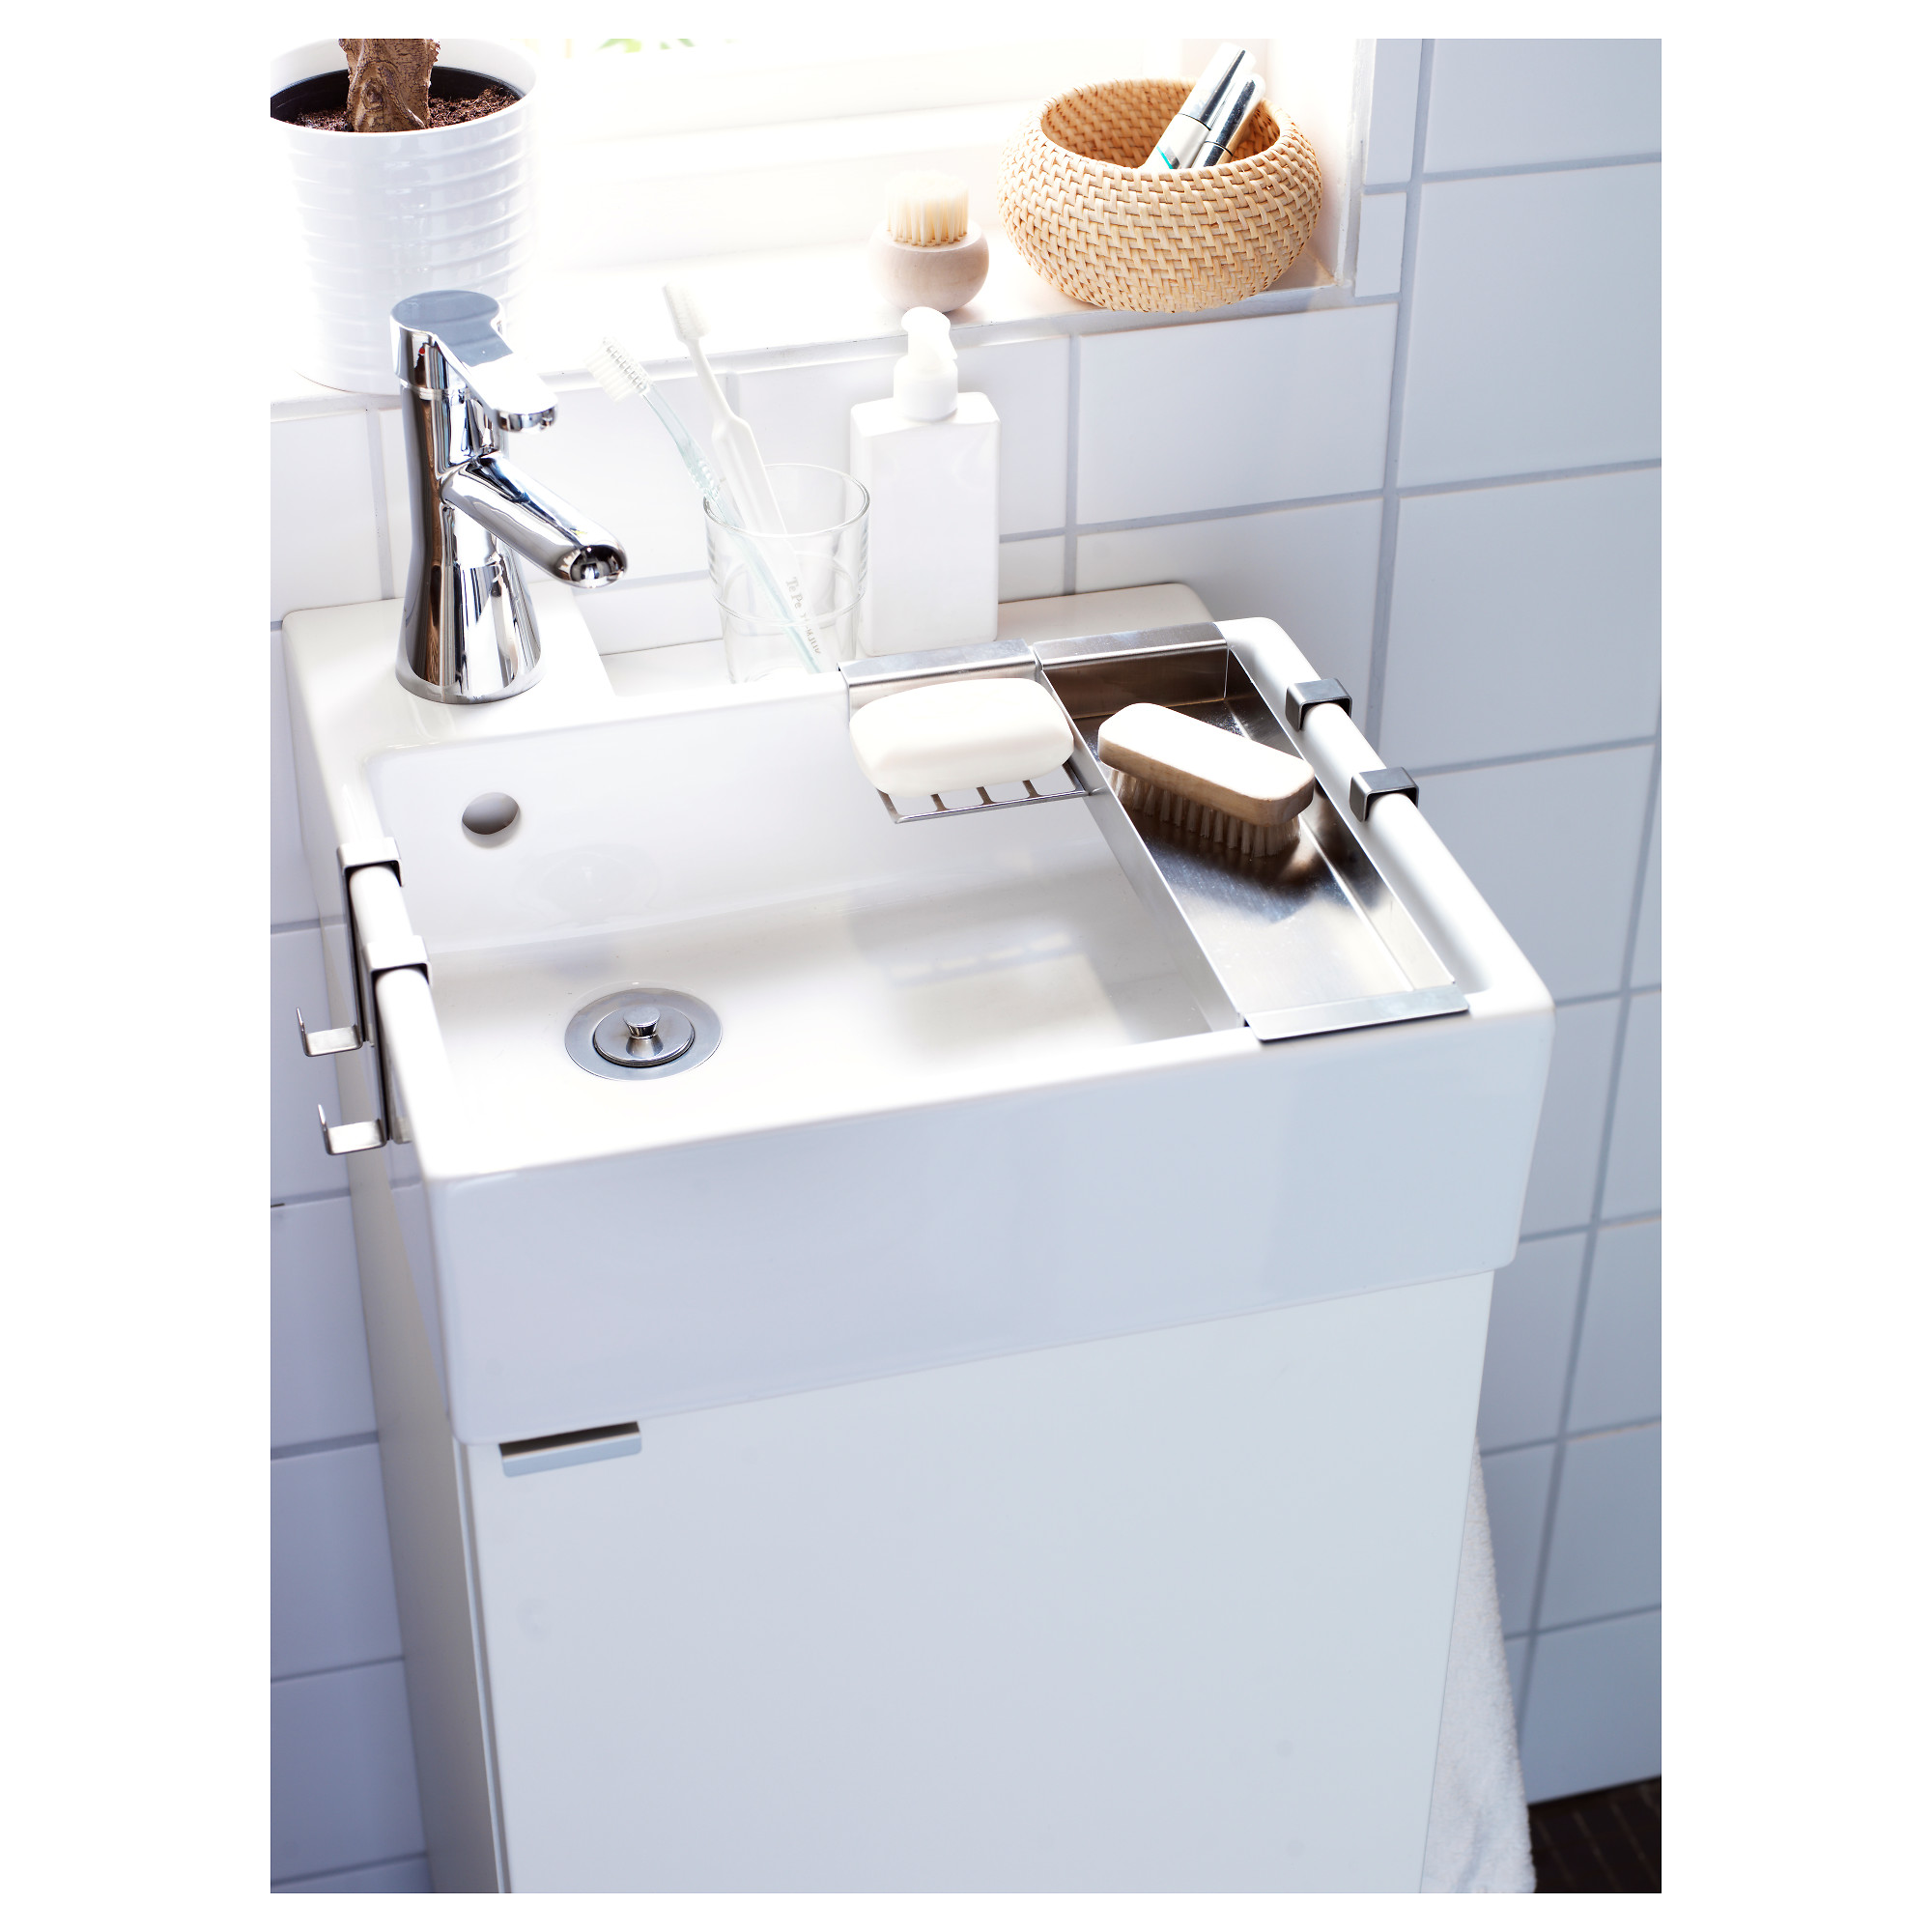 LILL…NGEN Sink cabinet with 1 door white IKEA